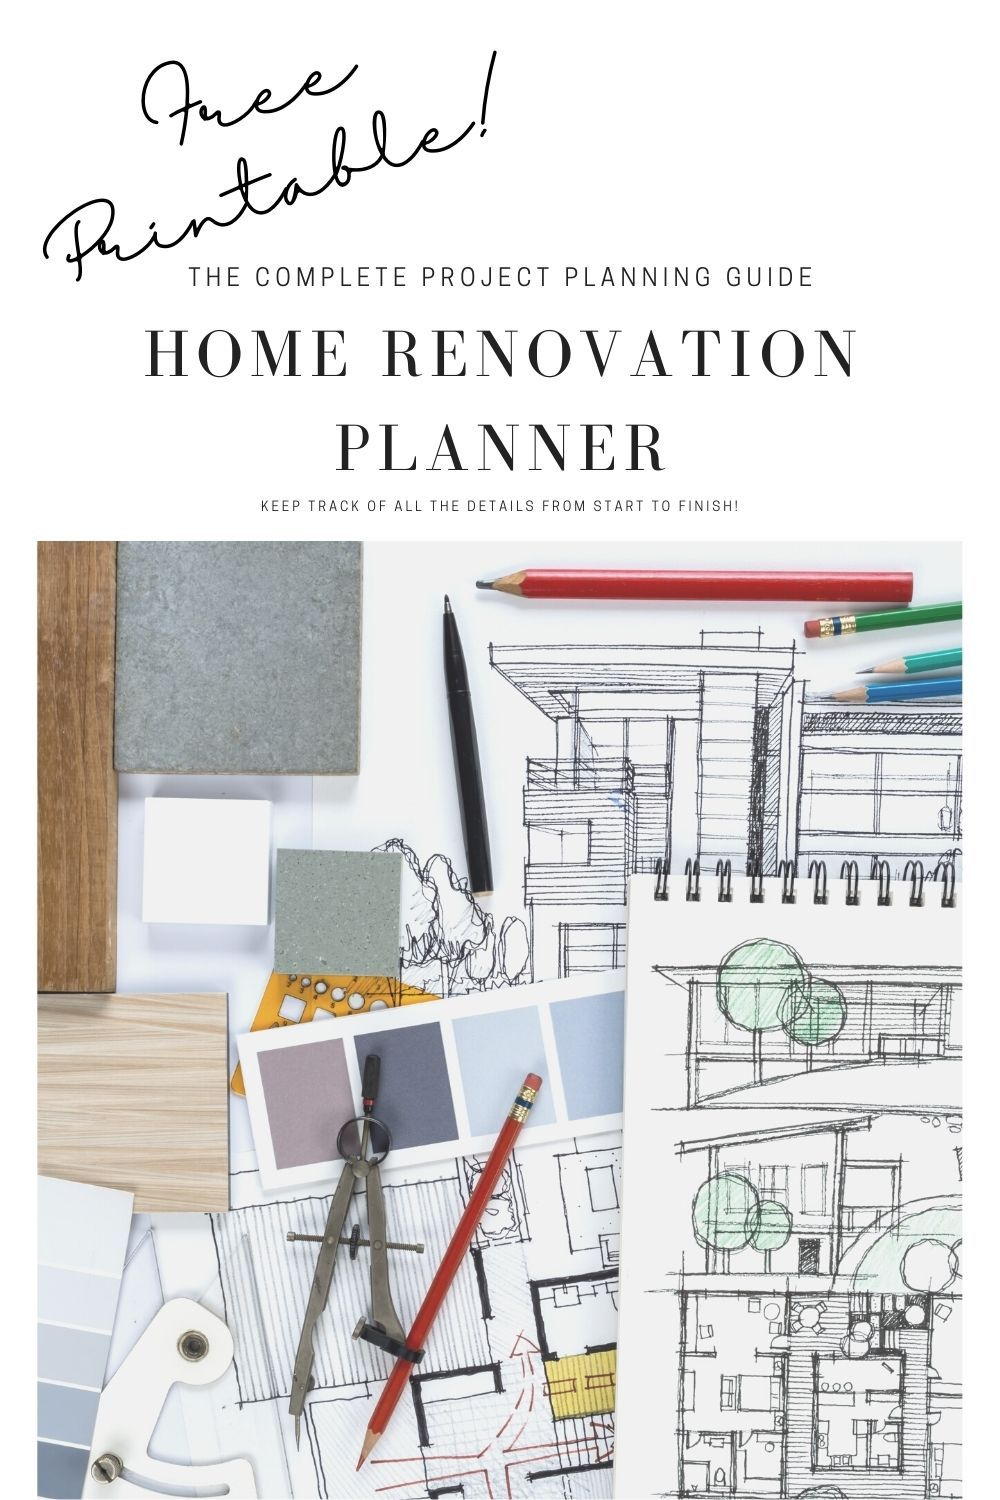 Free Home Renovation Planner